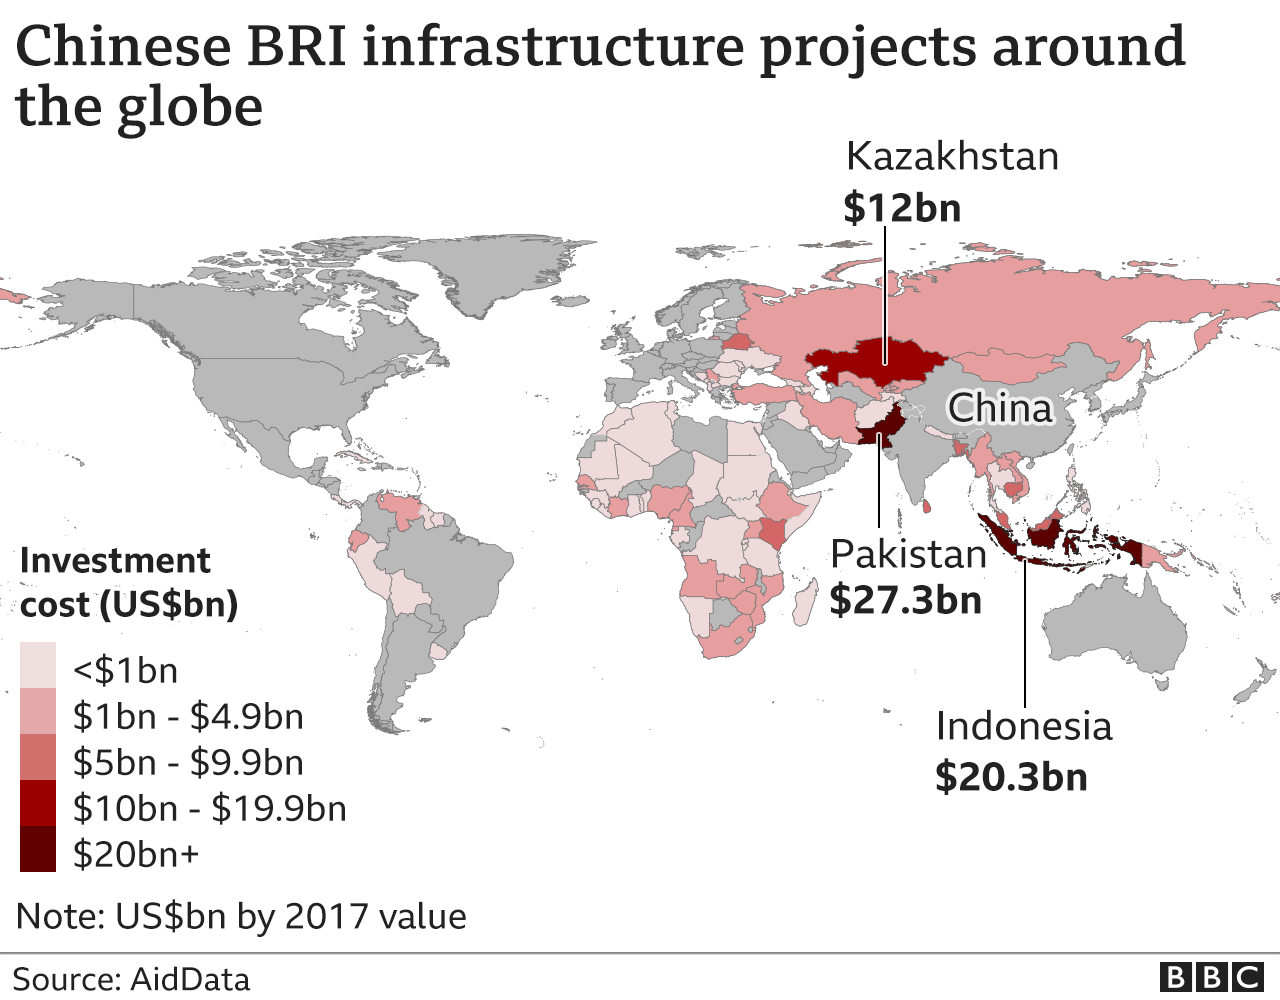 Map showing the combined value of China's infrastructure projects in different countries around the world.